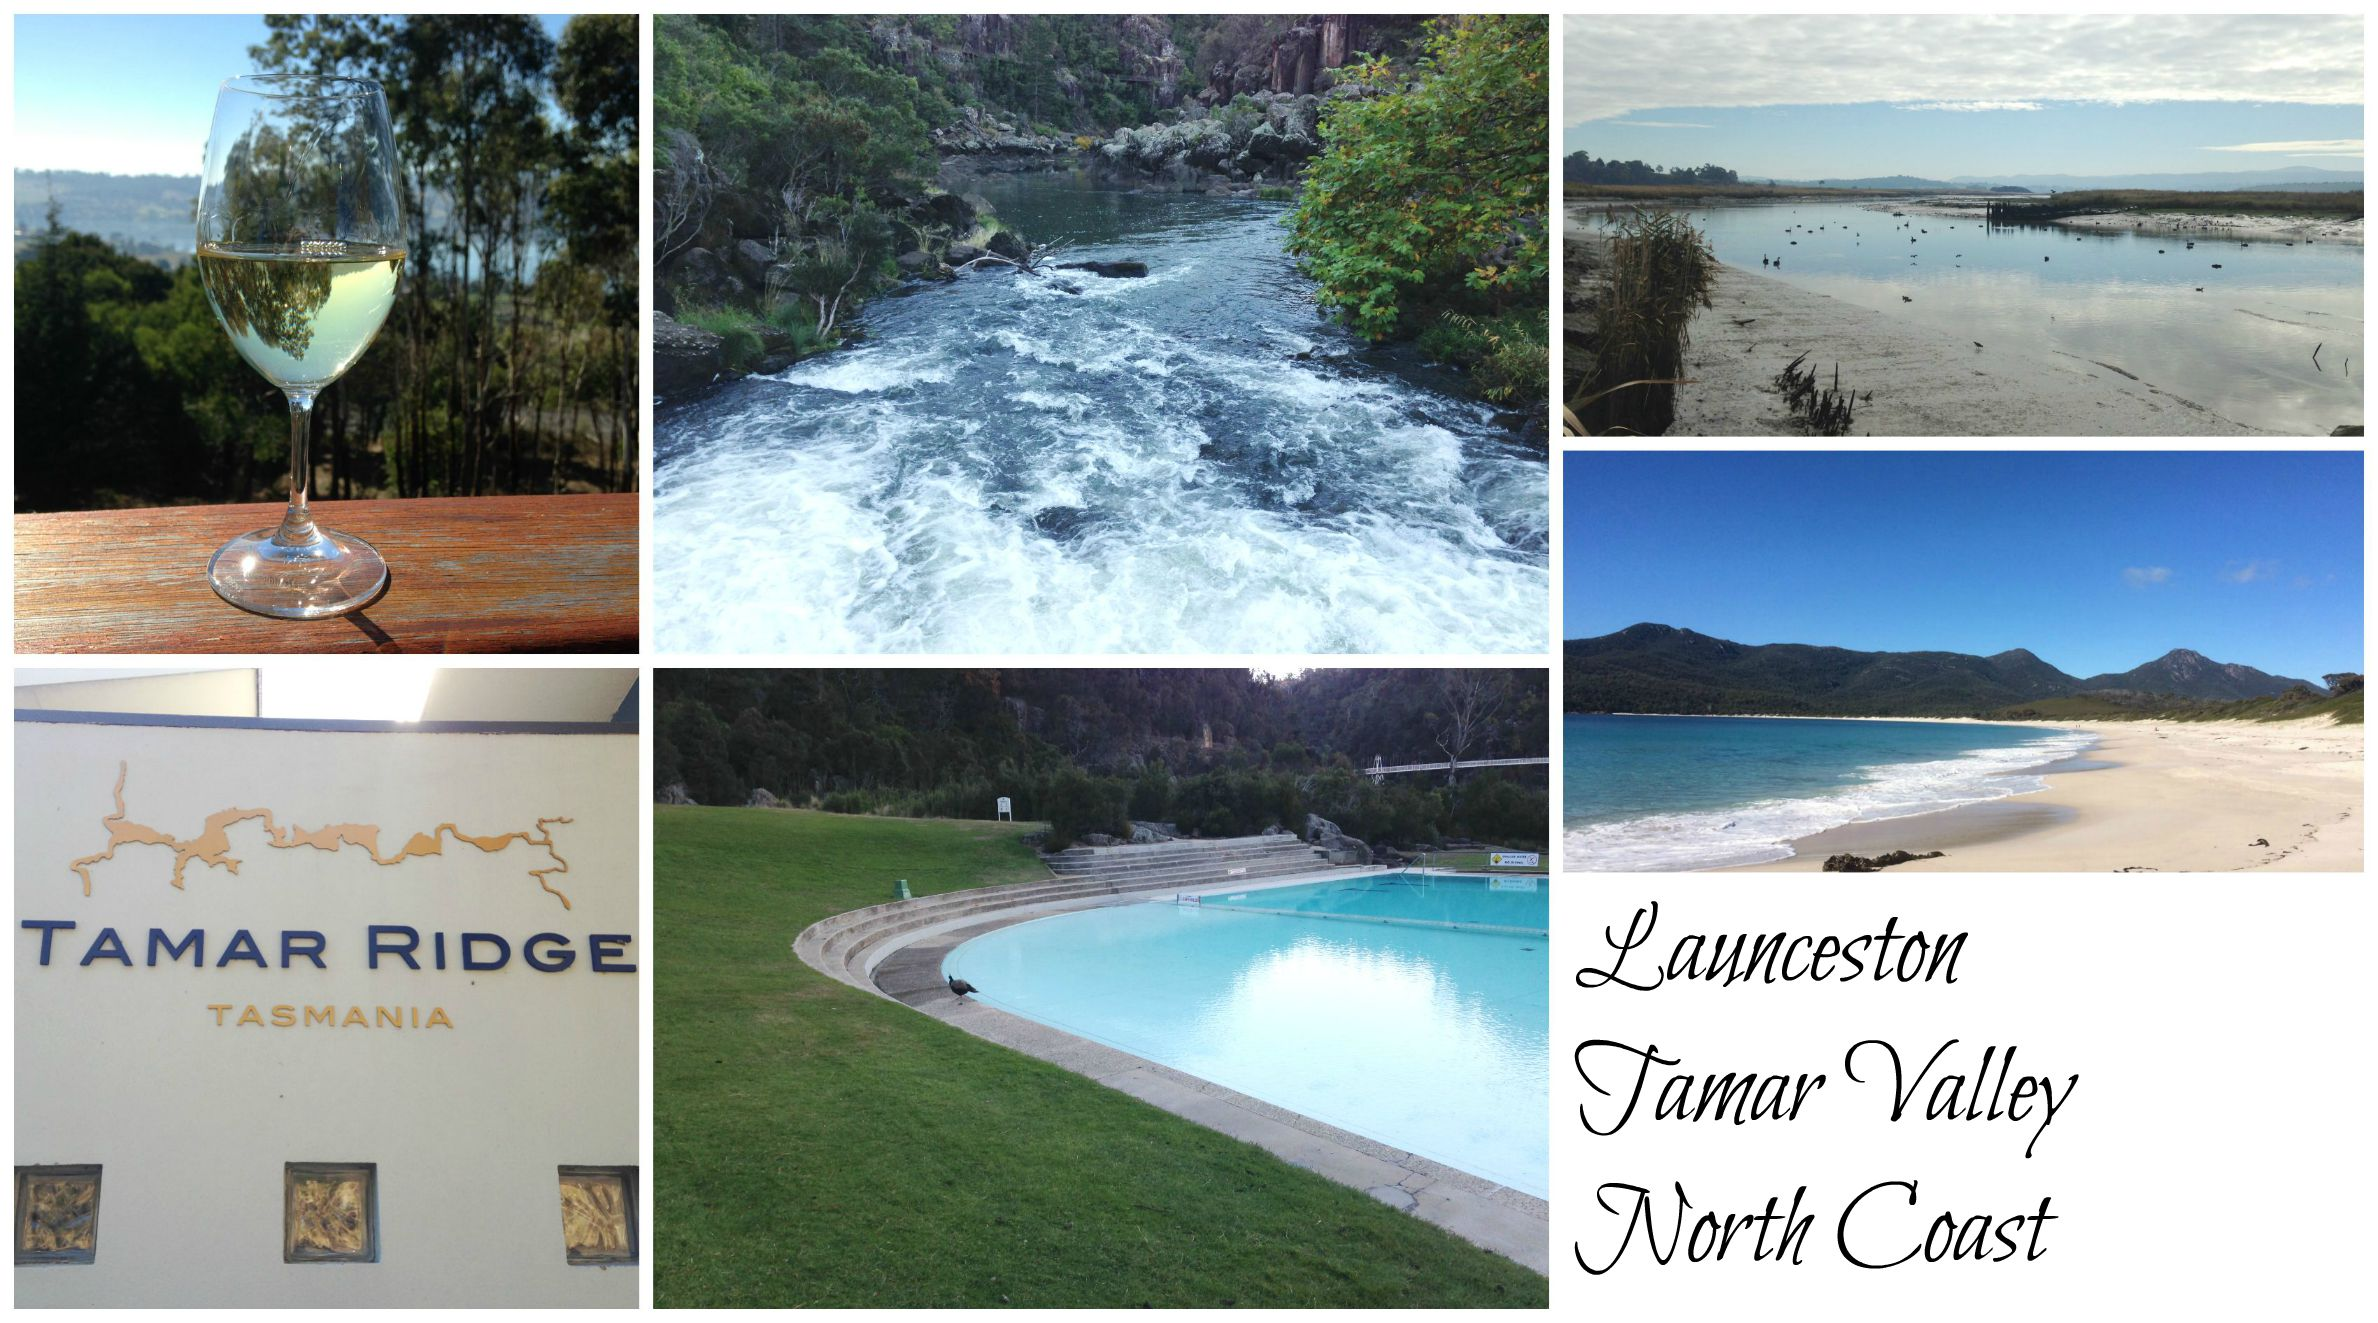 launceston-tamarvalley-northcoast-tasmania